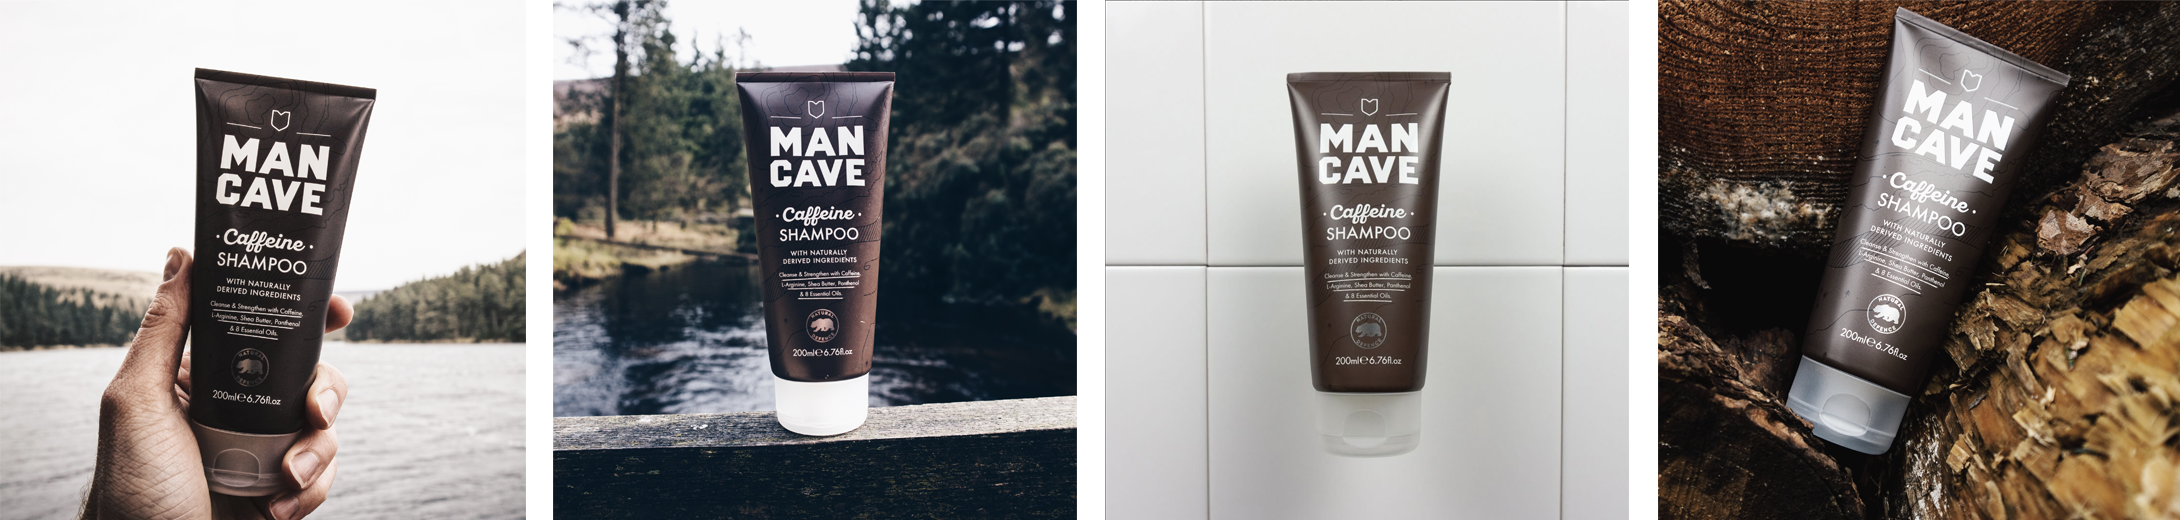 A selection of four lifestyle images. From left to right, a ManCave Caffeine shampoo being held by a mans hand in front of a blurred lake and tree line, a ManCave caffeine shampoo standing on a wooden fence in front of a blue river, a ManCave caffeine shampoo laid on a white tiled surface and a ManCave caffeine shampoo set between wooden logs